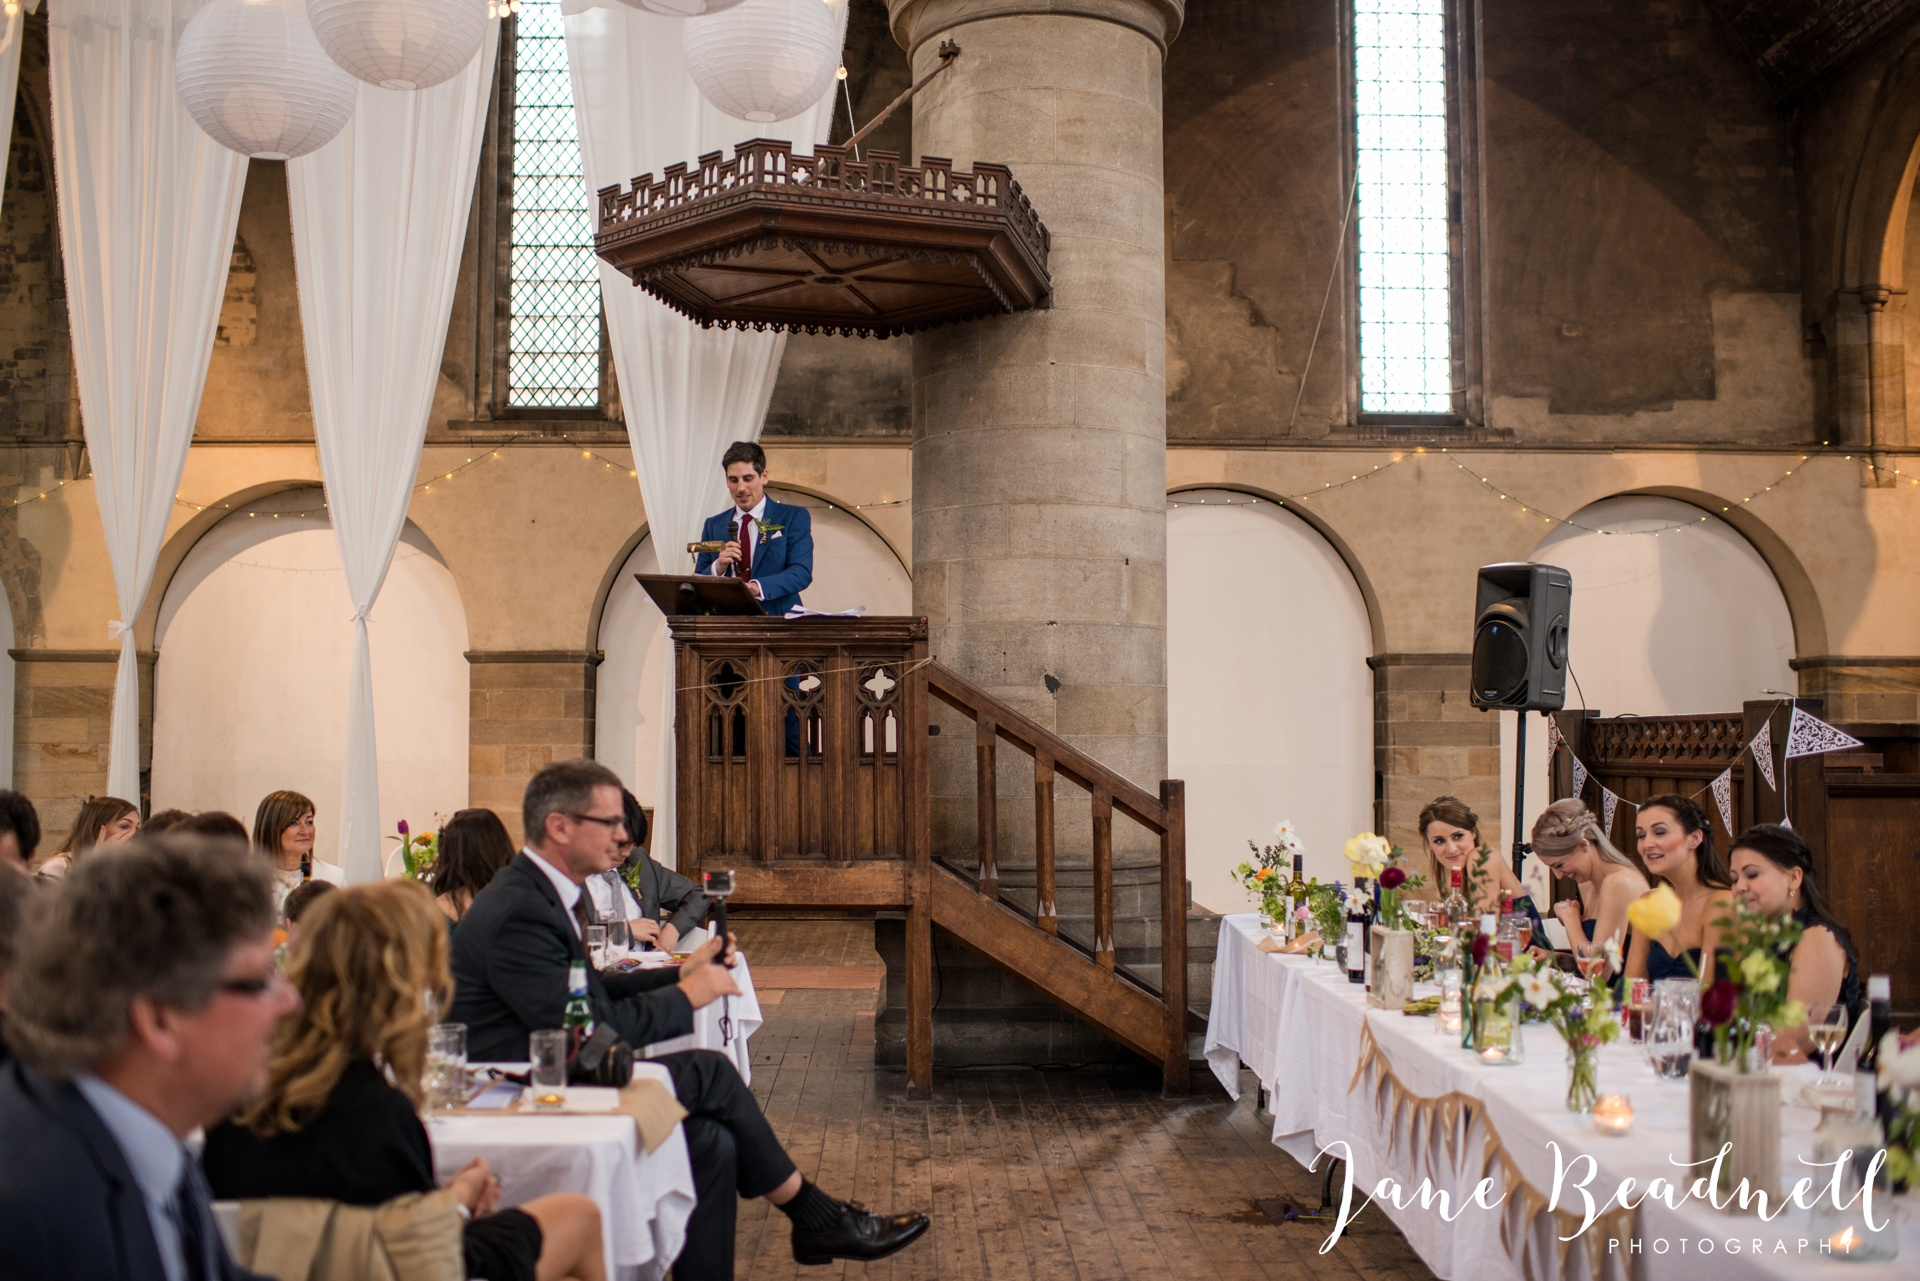 Left Bank Centre Leeds wedding photography by Jane Beadnell photography Yorkshire_0104